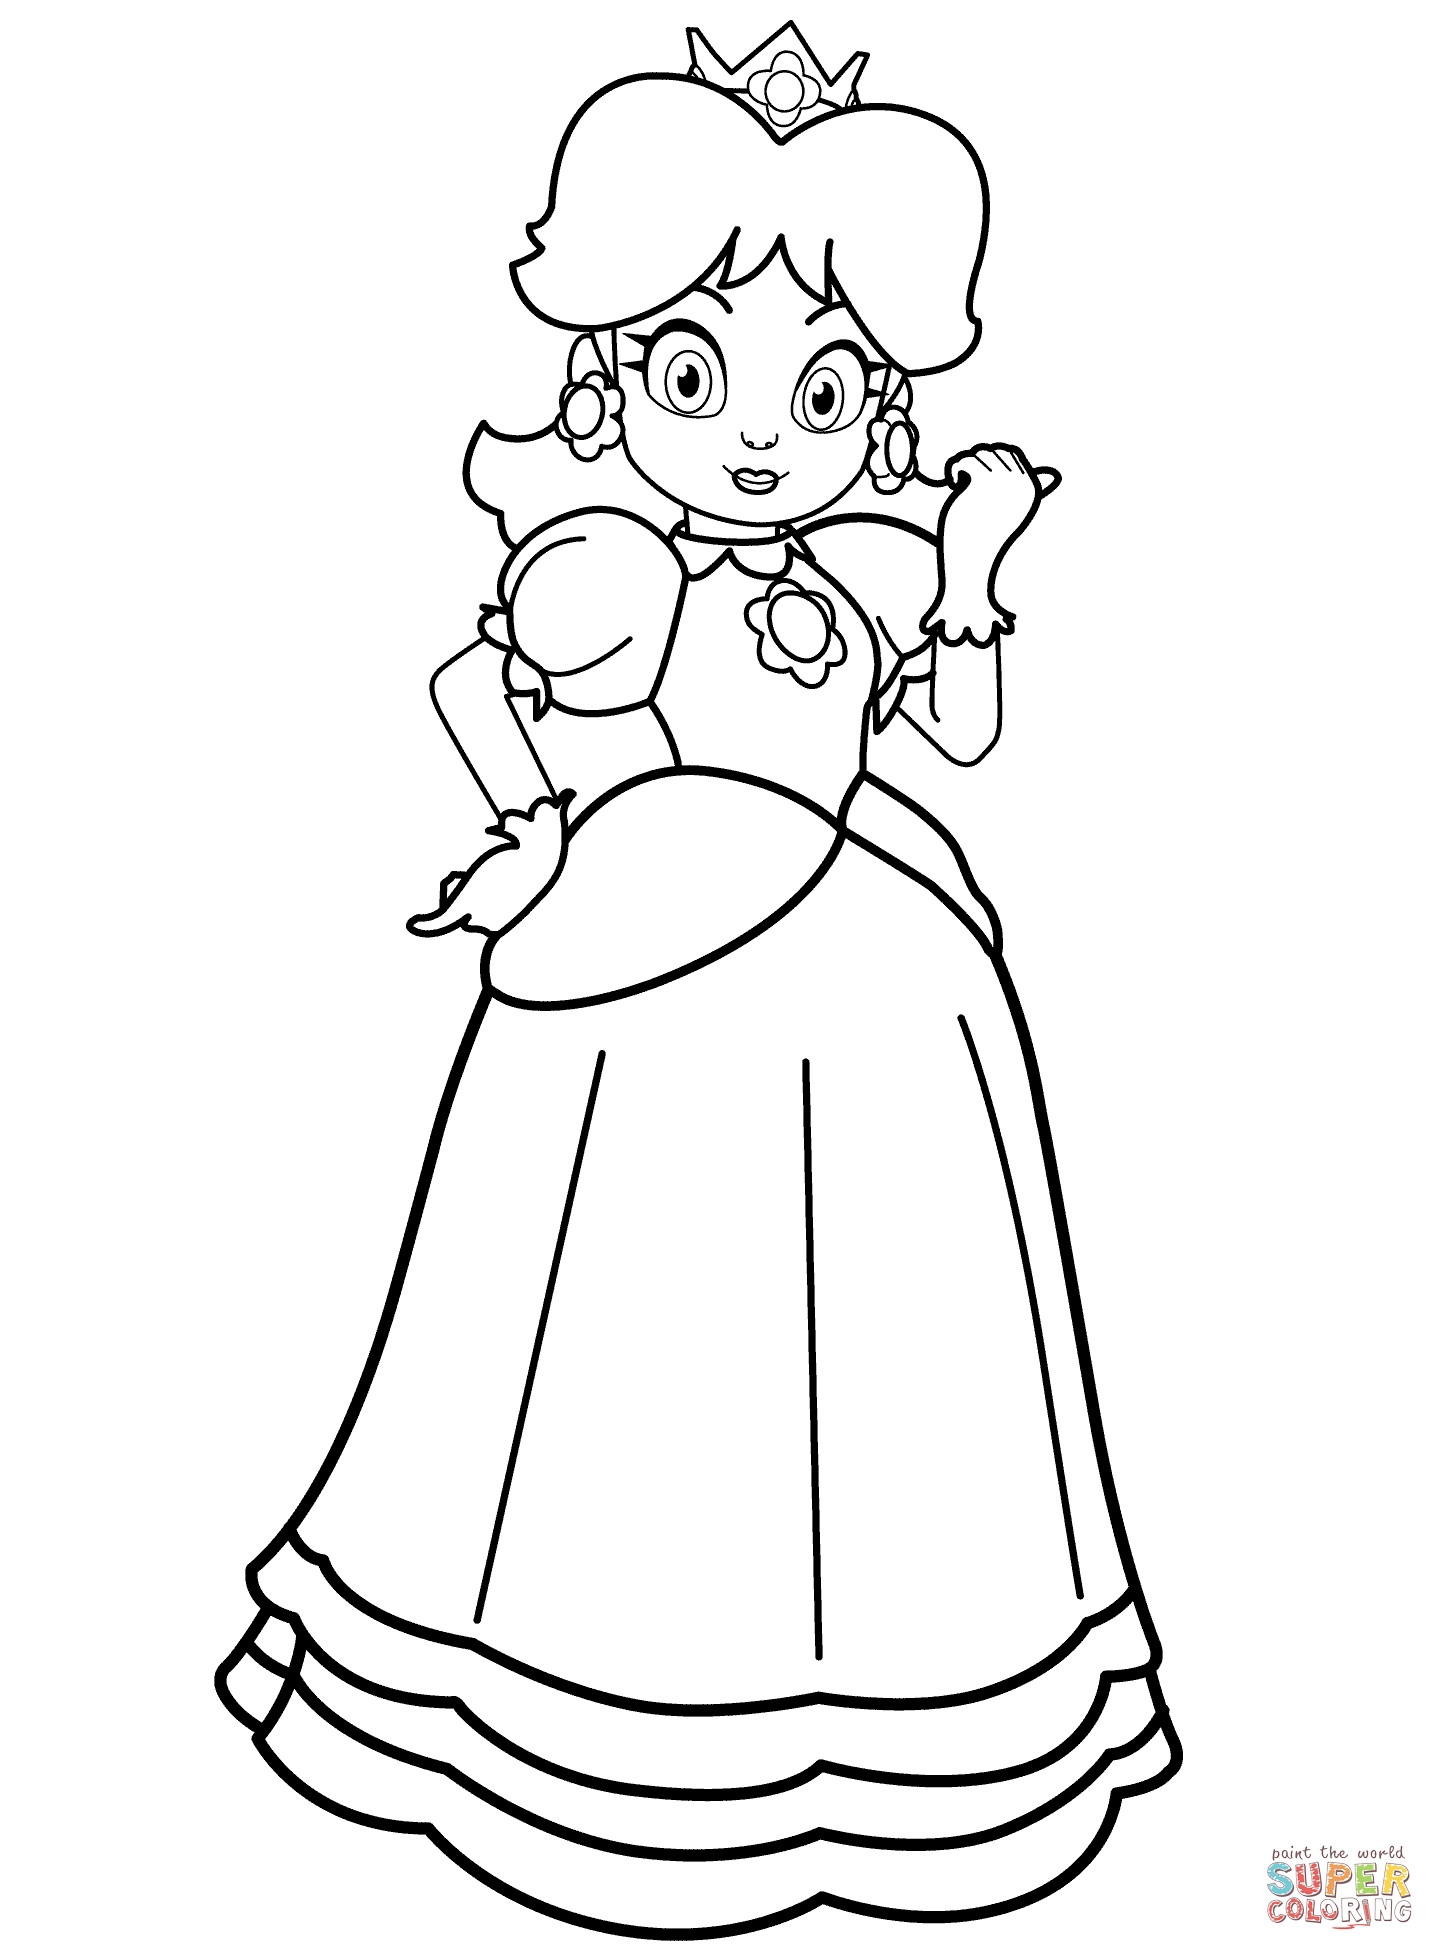 Daisy Coloring Pages  Coloriage Princesse Daisy